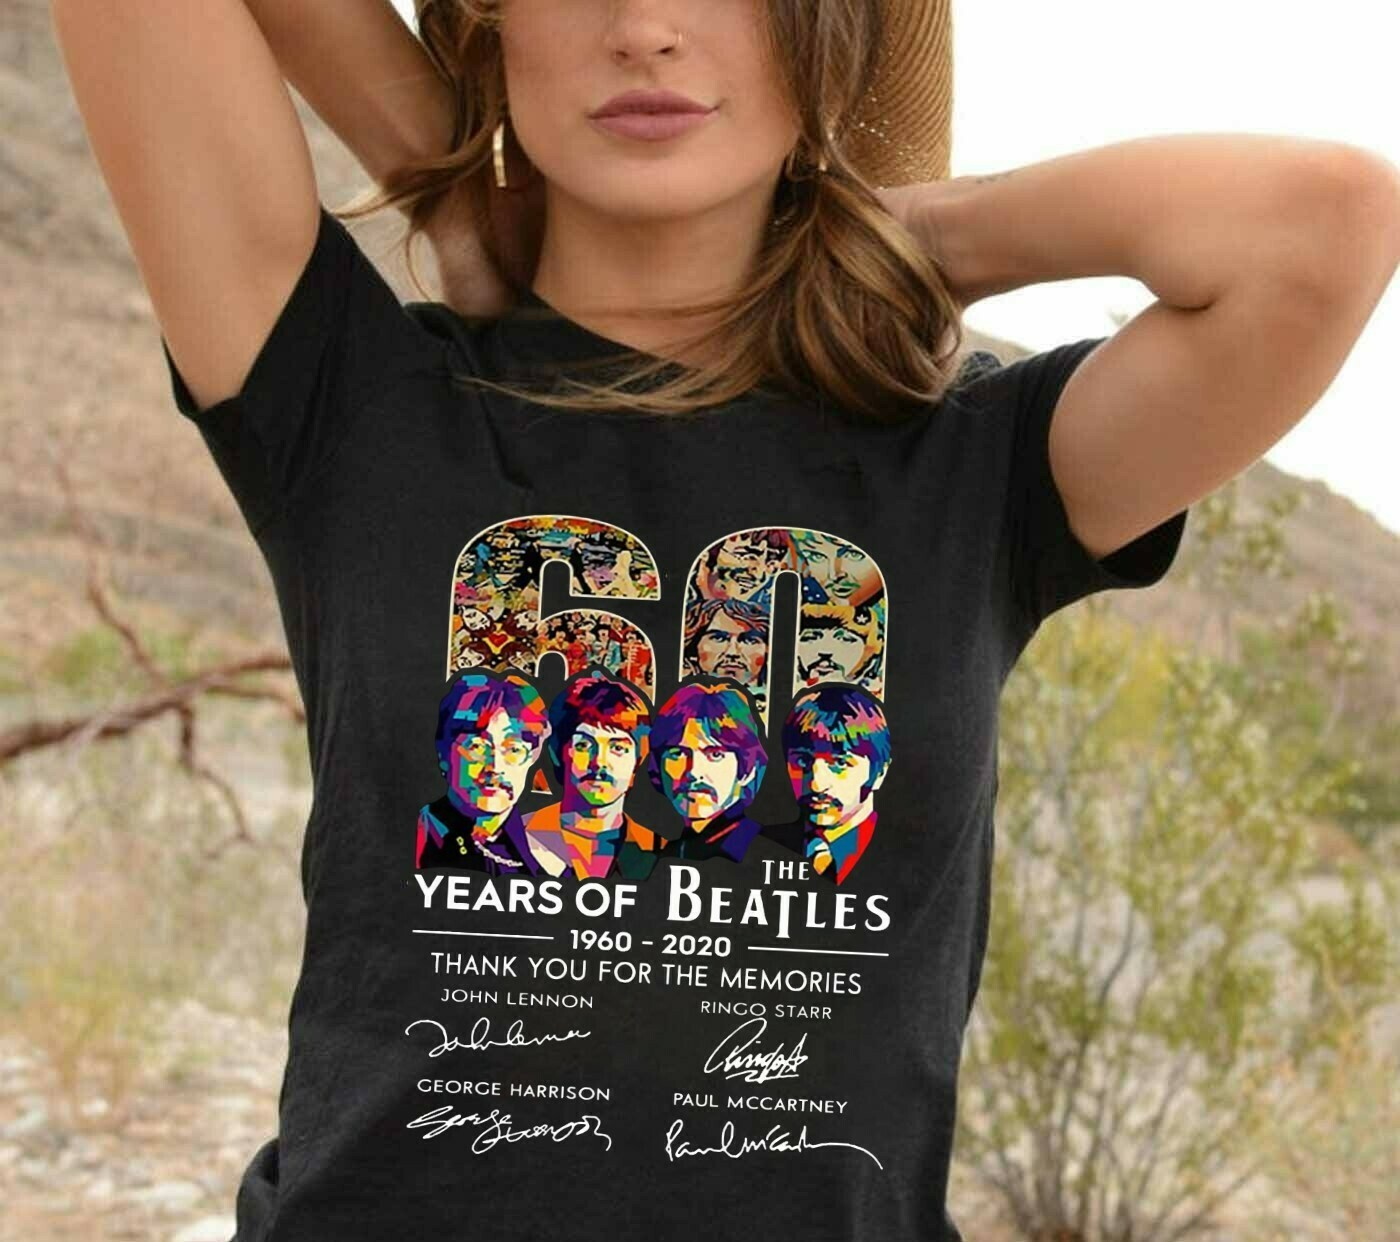 The beatles 60th anniversary 1960 - 2020 thank you for the memories signal,Classic Rock Band Legend Fan  T-Shirt Hoodie Sweatshirt Sweater Tee Kids Youth Gifts Jolly Family Gifts